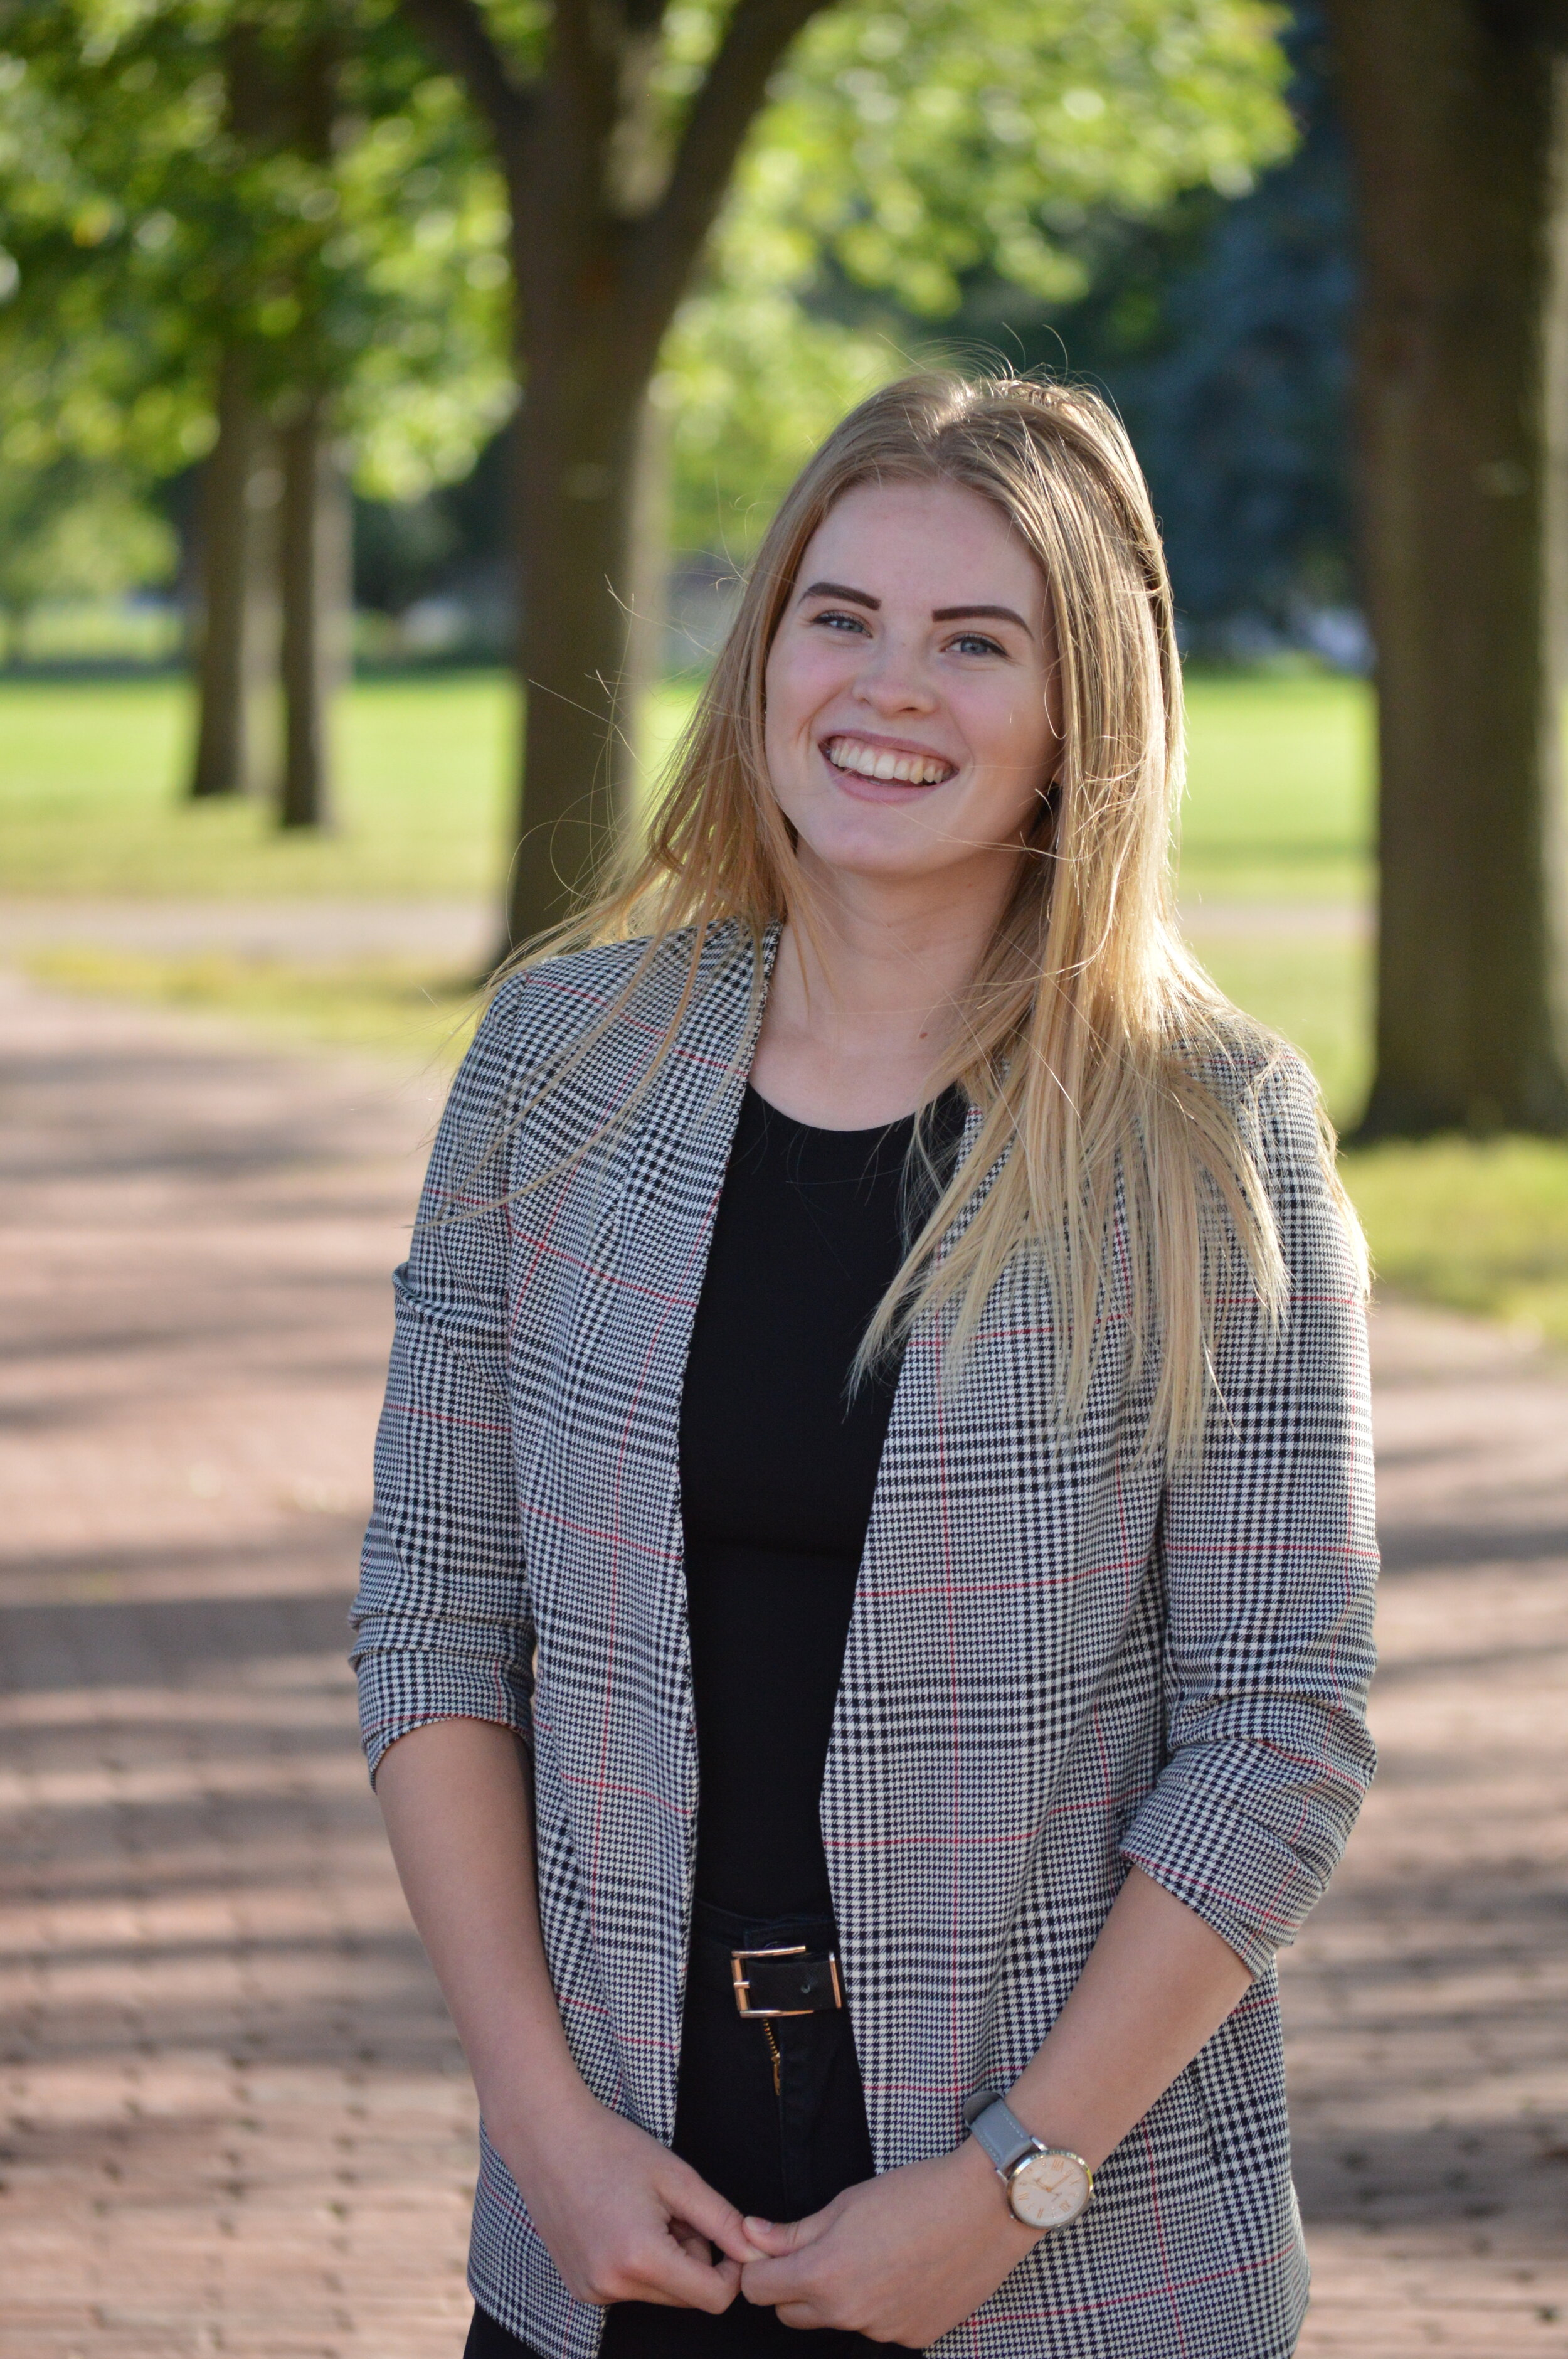 """Primary Organizer - Name: Sierra VanderkampProgram: 3rd Year Bio-medical Sciences, minoring in Neuroscience3 favourite things: Calendars, Mini Coopers, and WinningFavourite TED Talk: """"My stroke of insight"""" by Dr. Jill Bolte Taylor"""